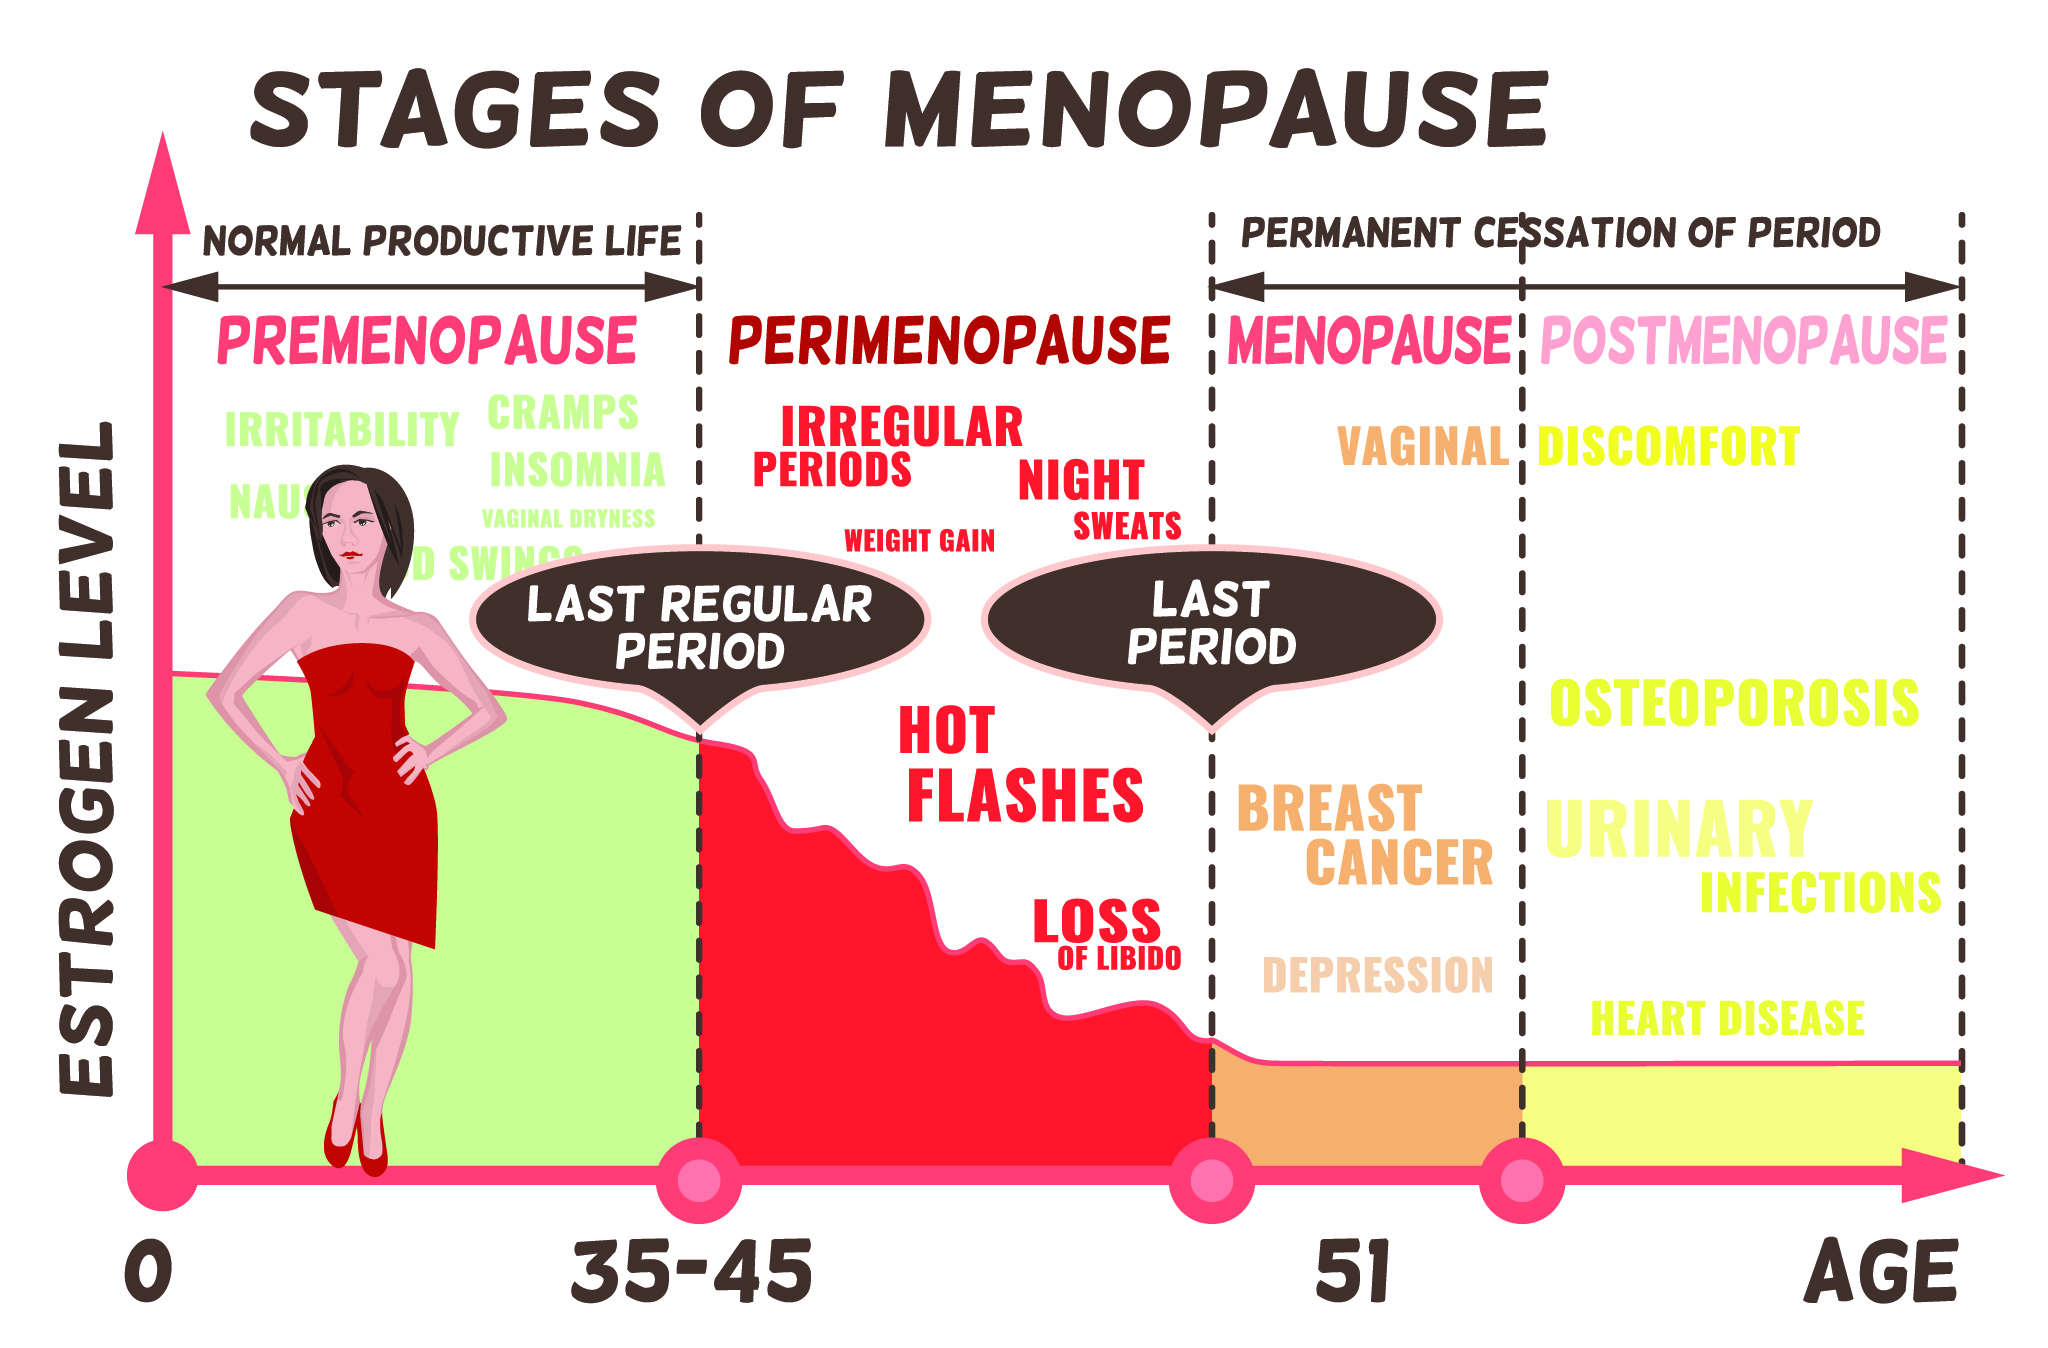 The Stages and symptoms of menopause